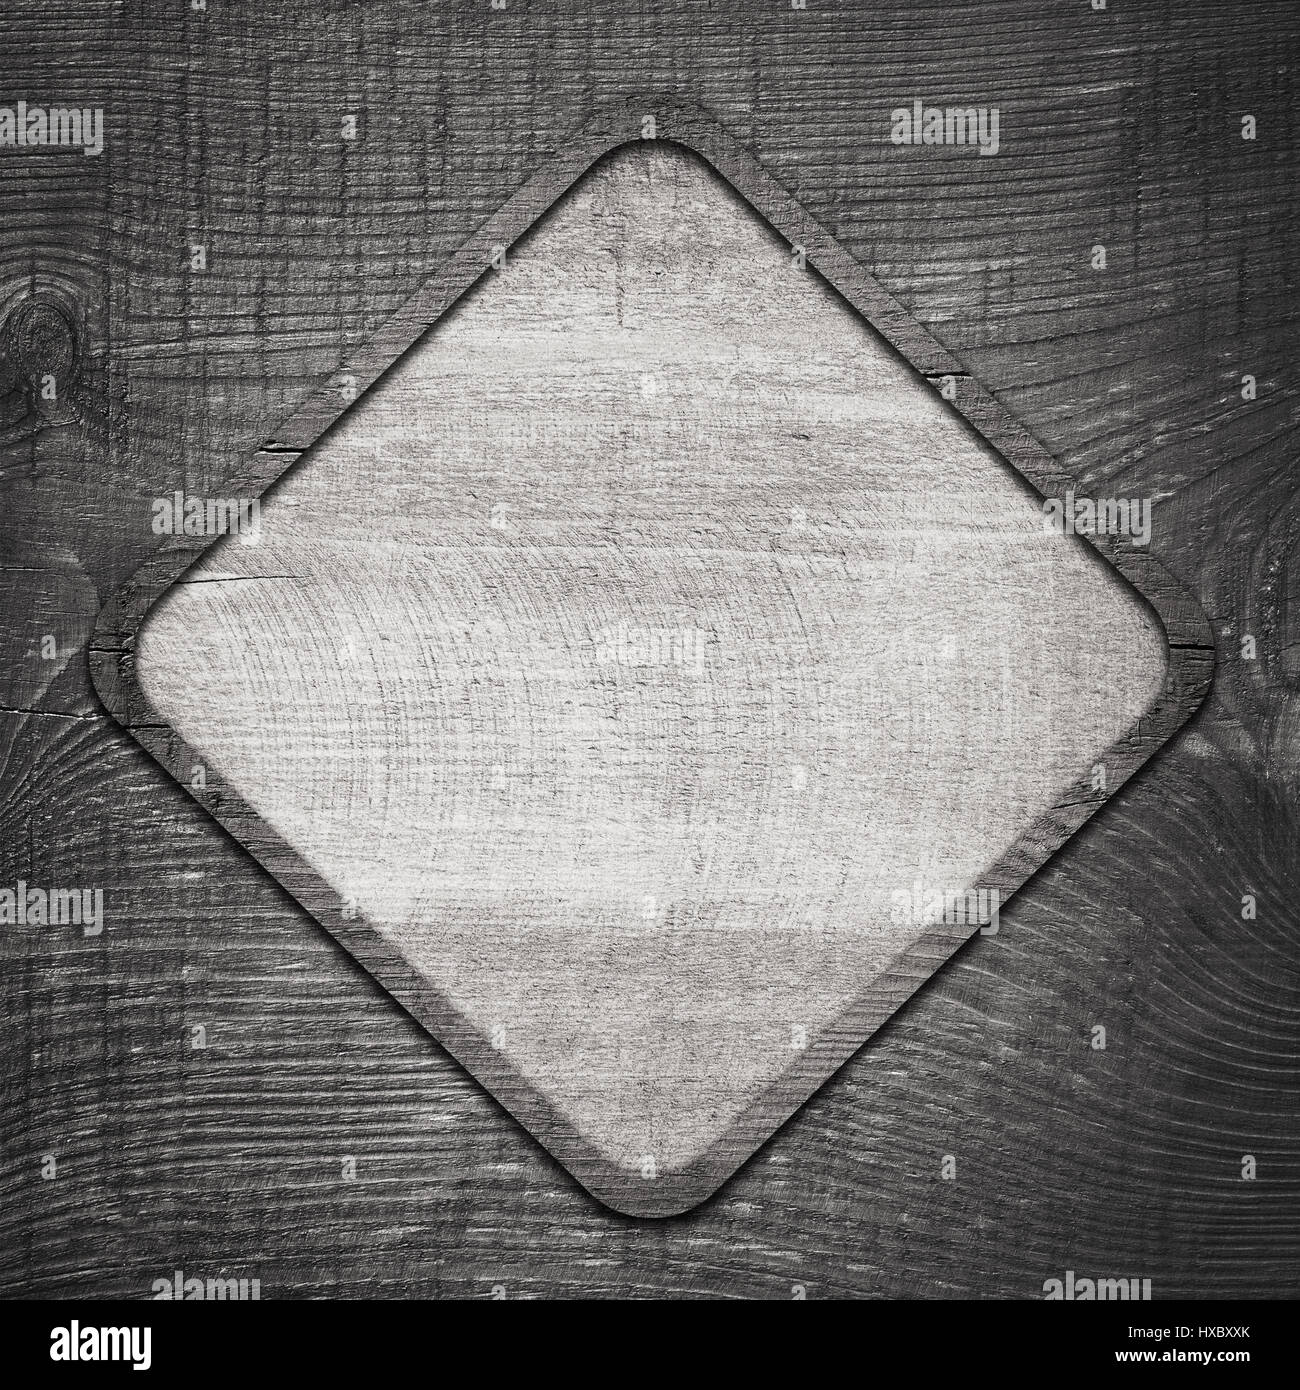 Gray wooden lozenge with frame on dark wall - Stock Image